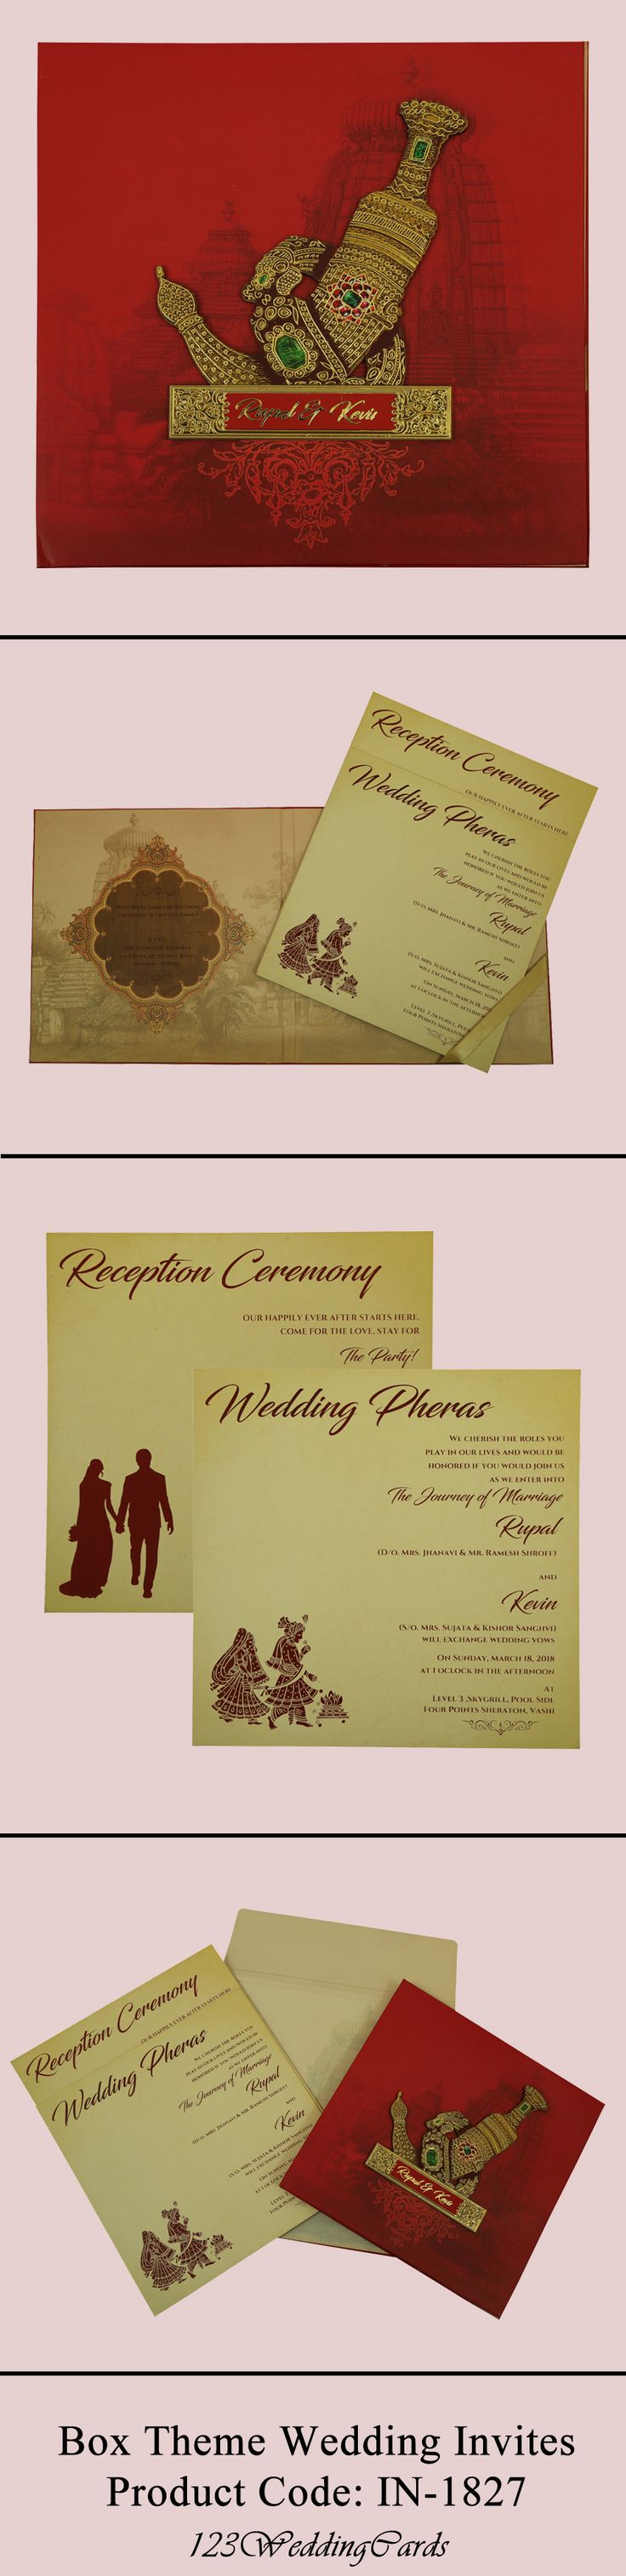 Matte paper box theme wedding invitation made